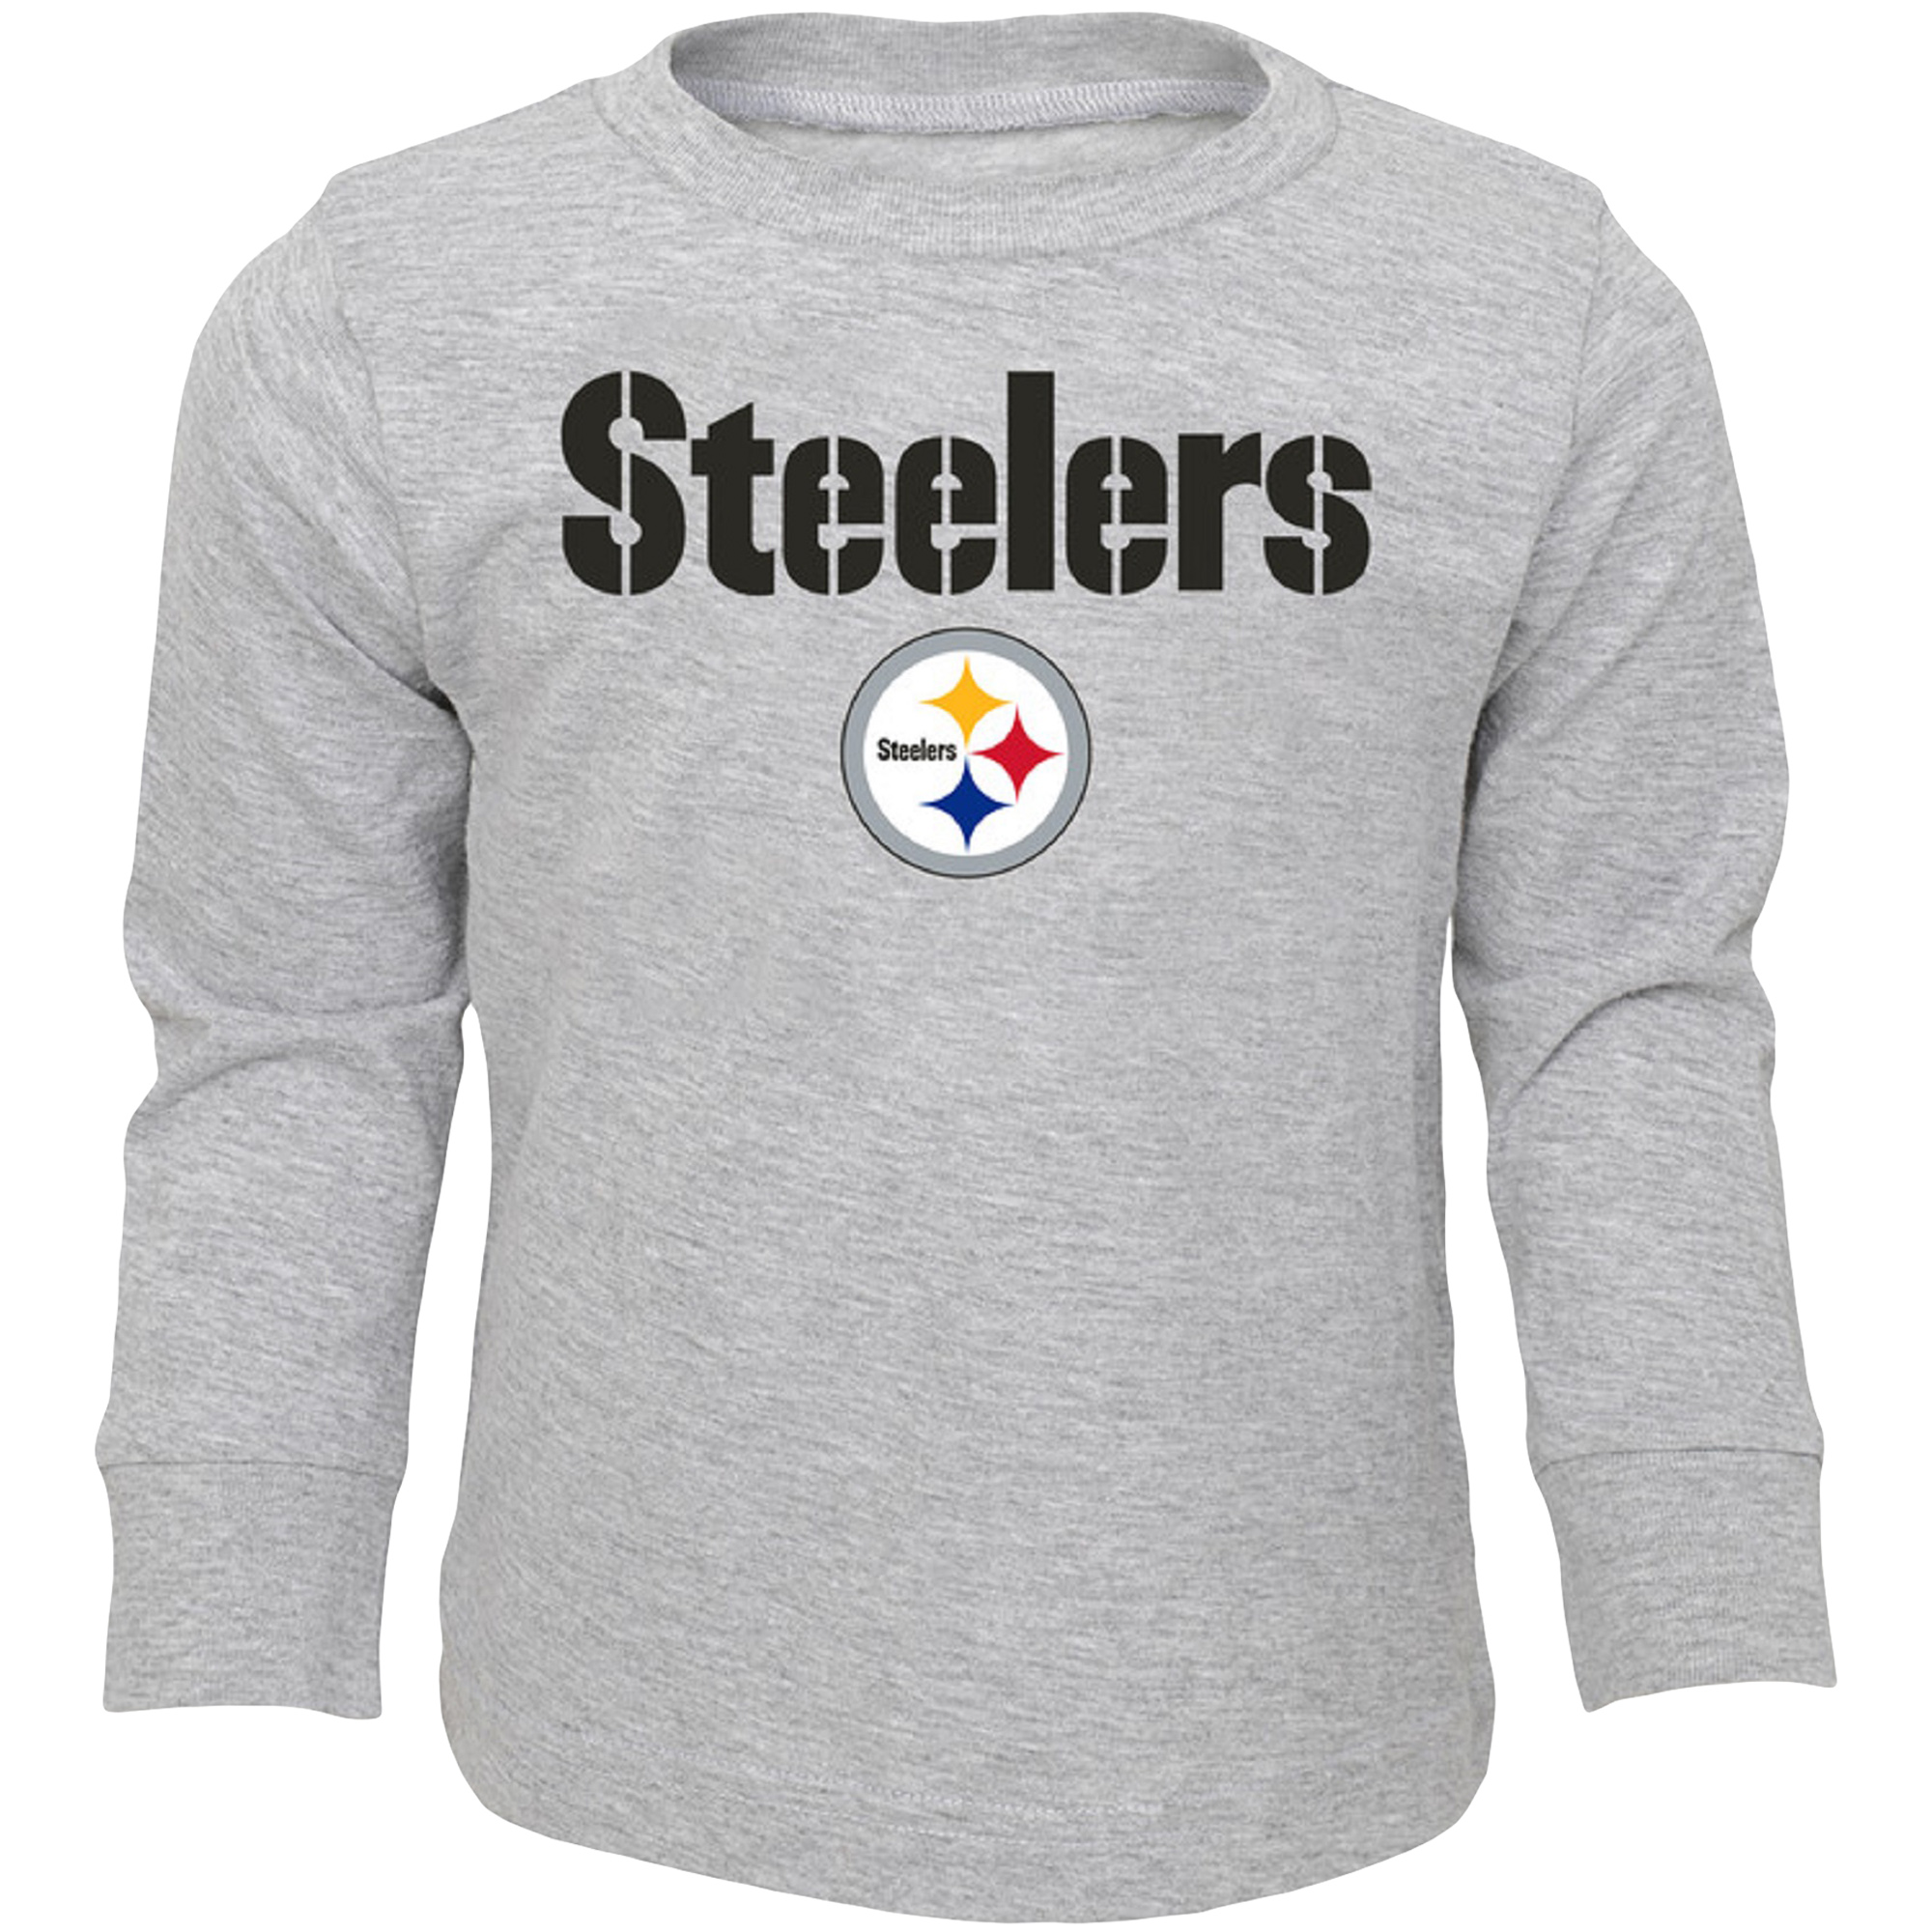 Sexy steelers jersey